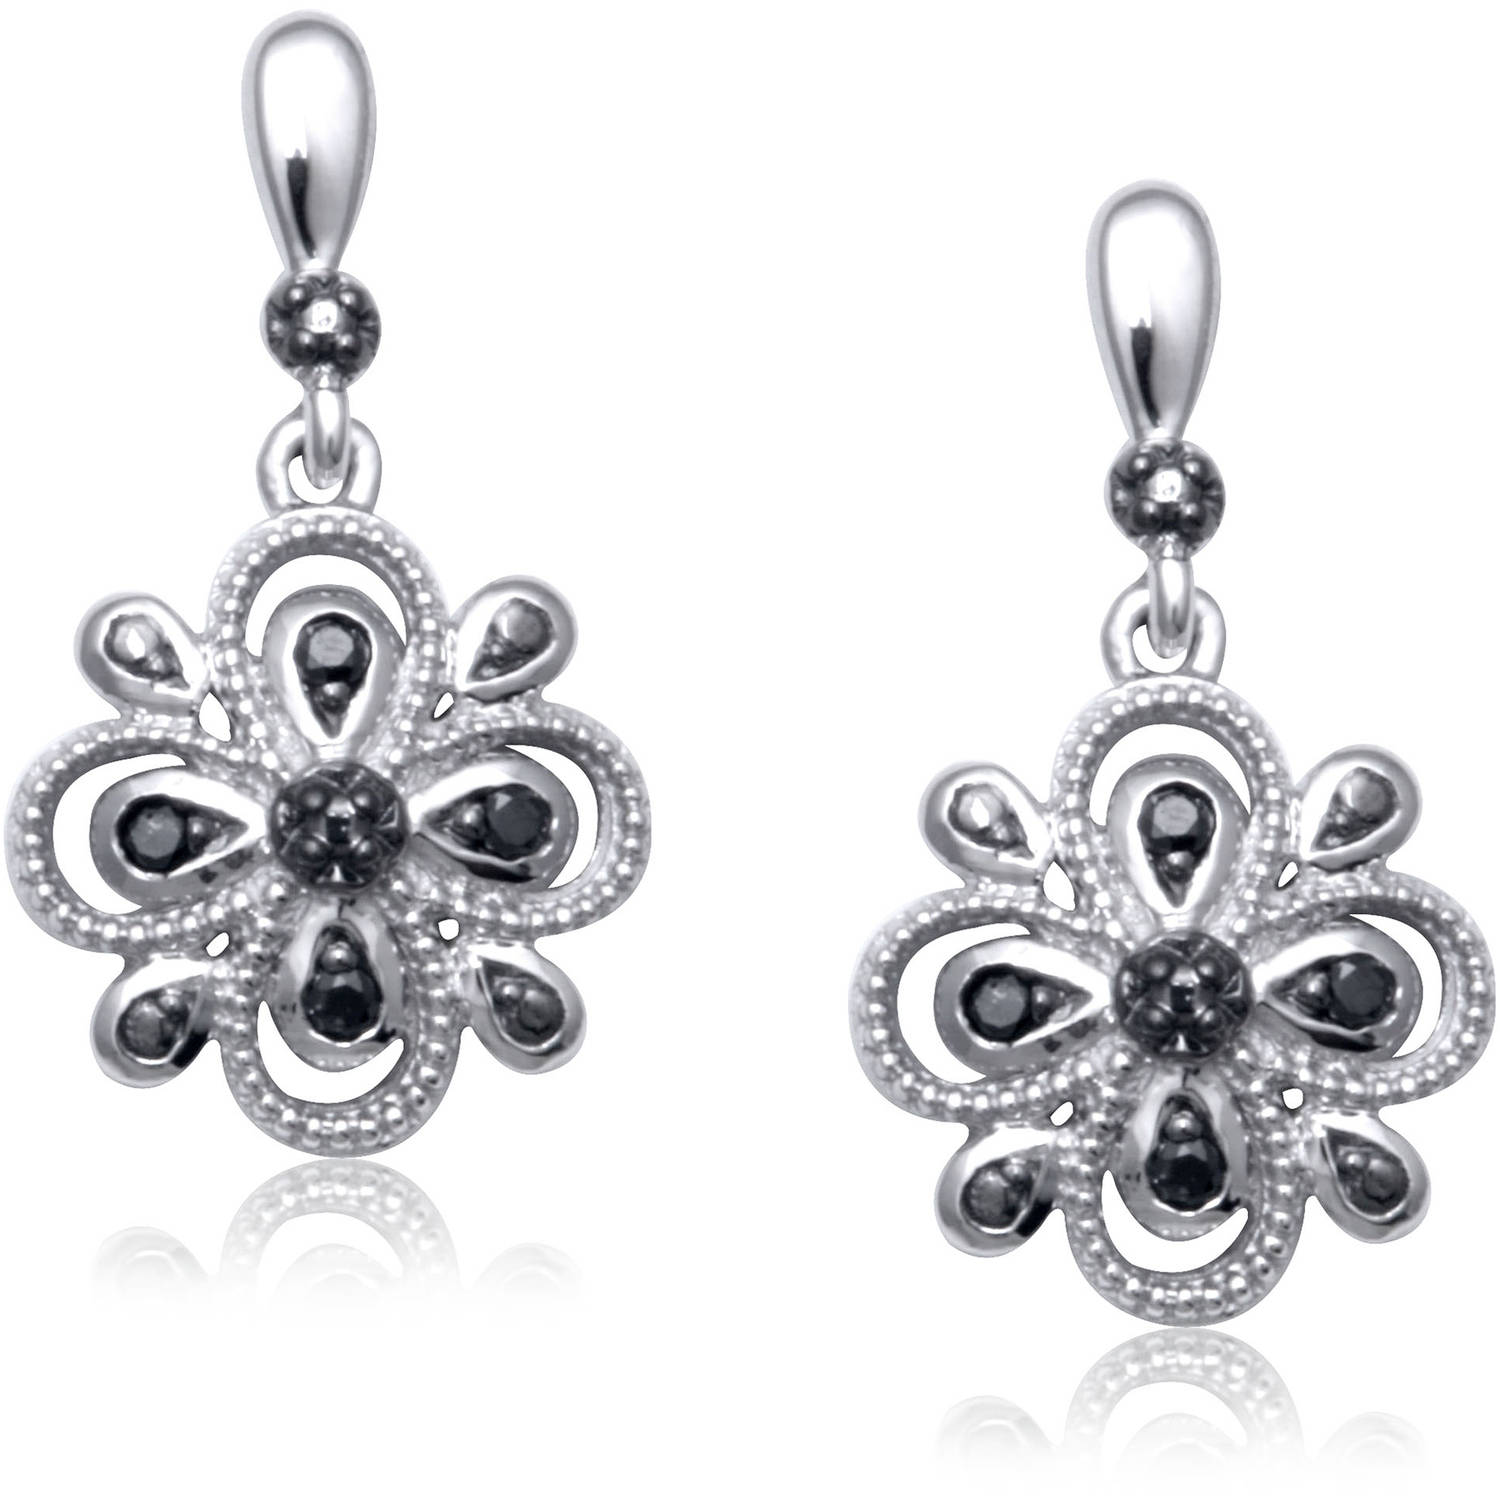 Enhanced Black Diamond Accent Sterling Silver Earrings